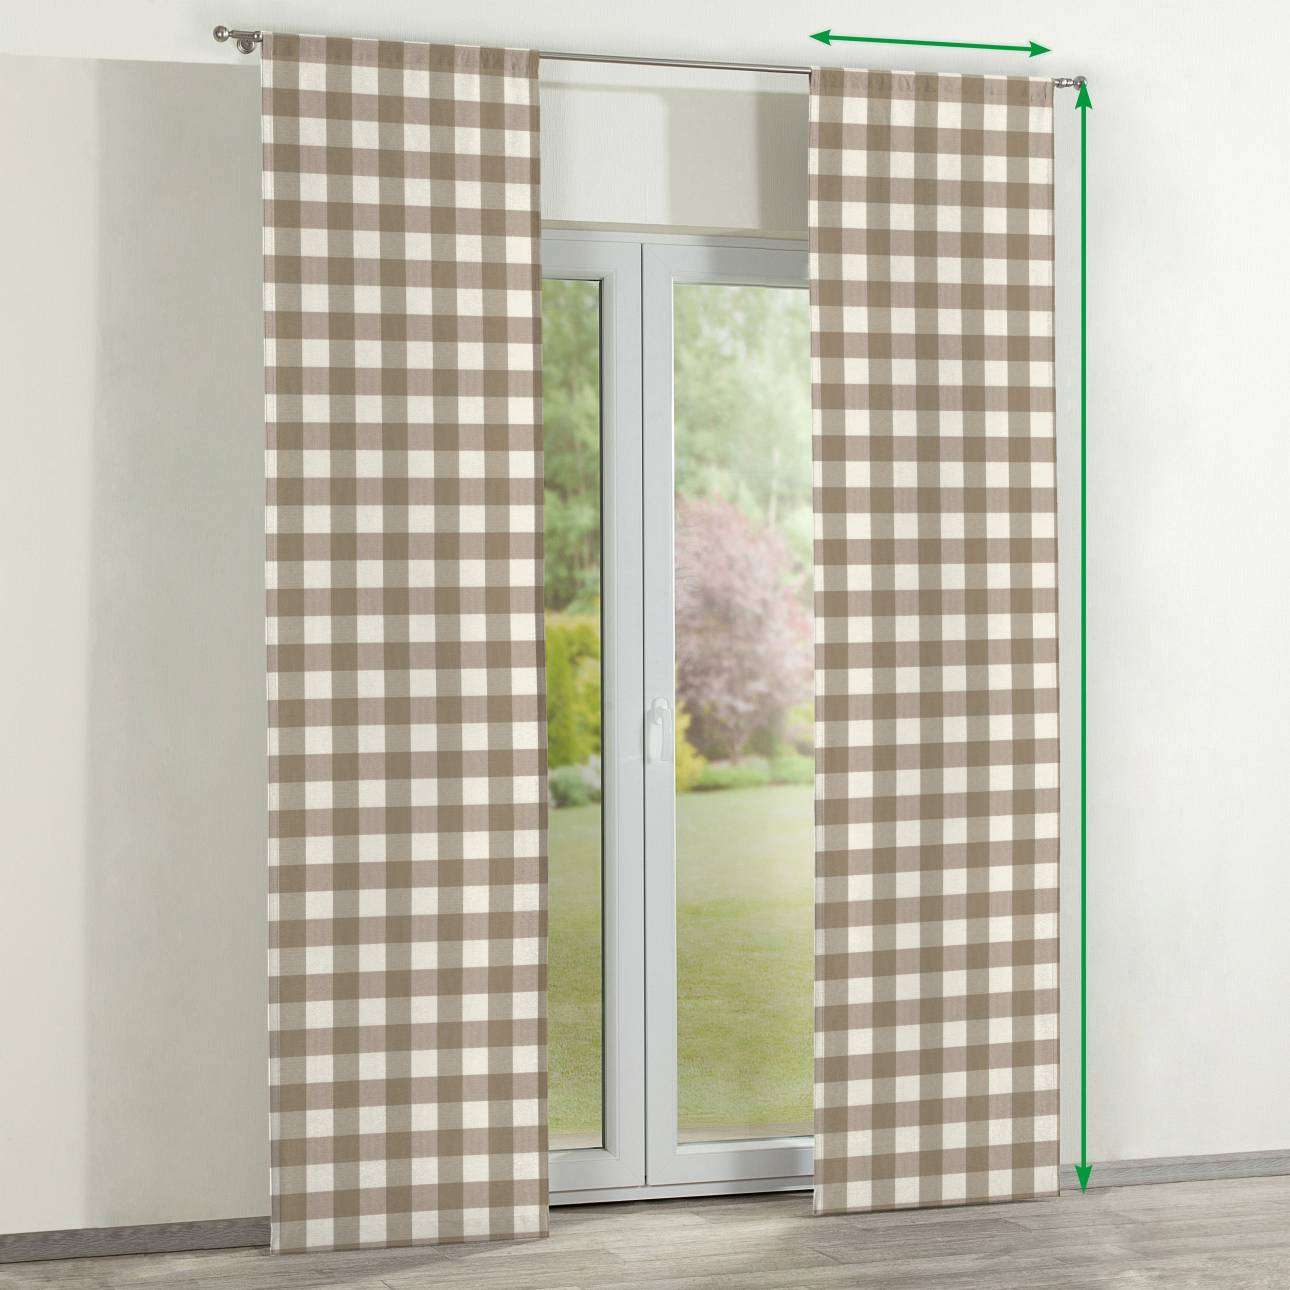 Slot panel curtains – Set of 2 in collection Quadro, fabric: 136-08